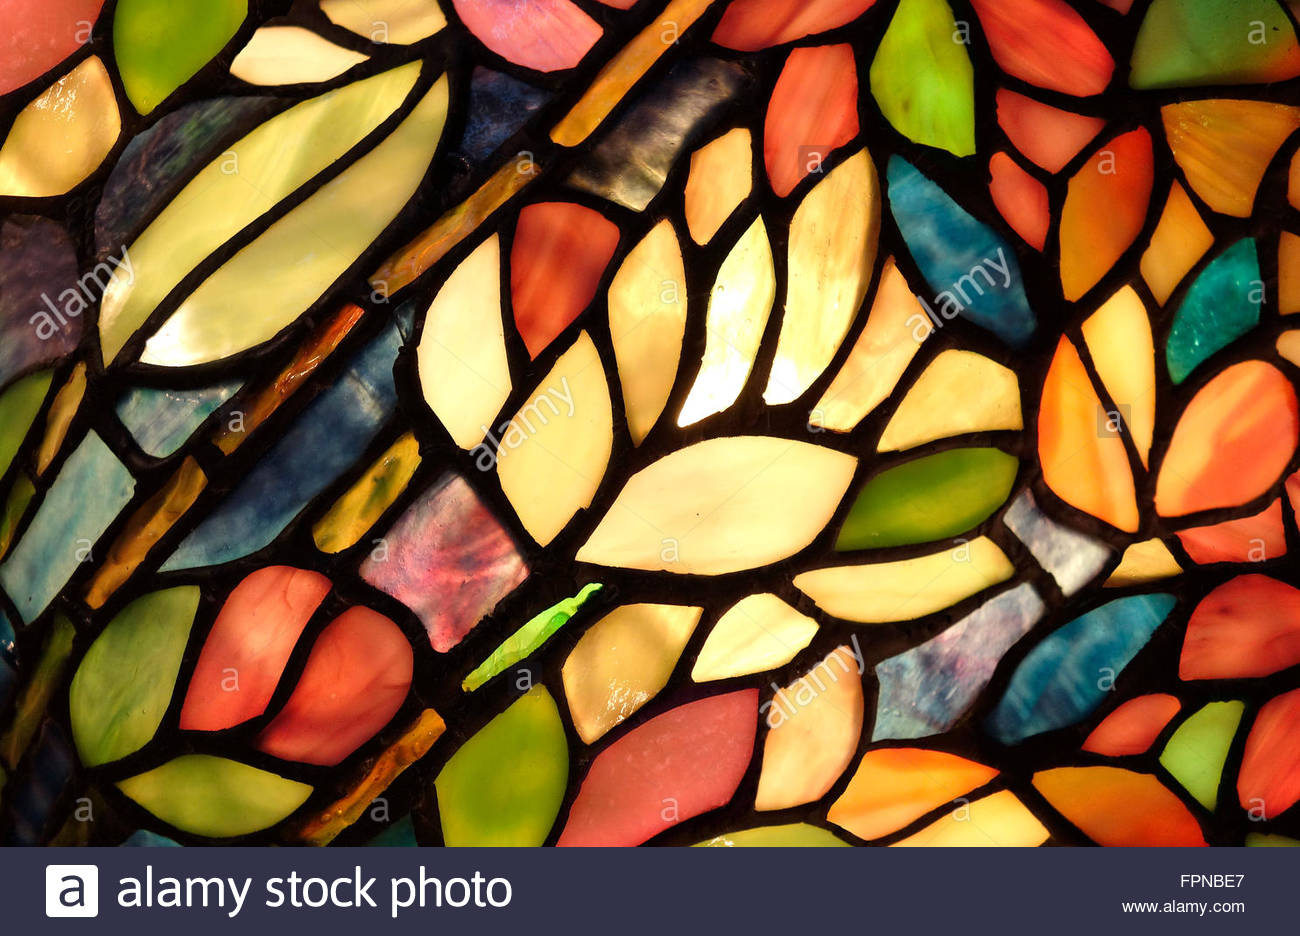 Hand crafted stained glass in a small church window. Very colorful and vibrant art. - Stock Image